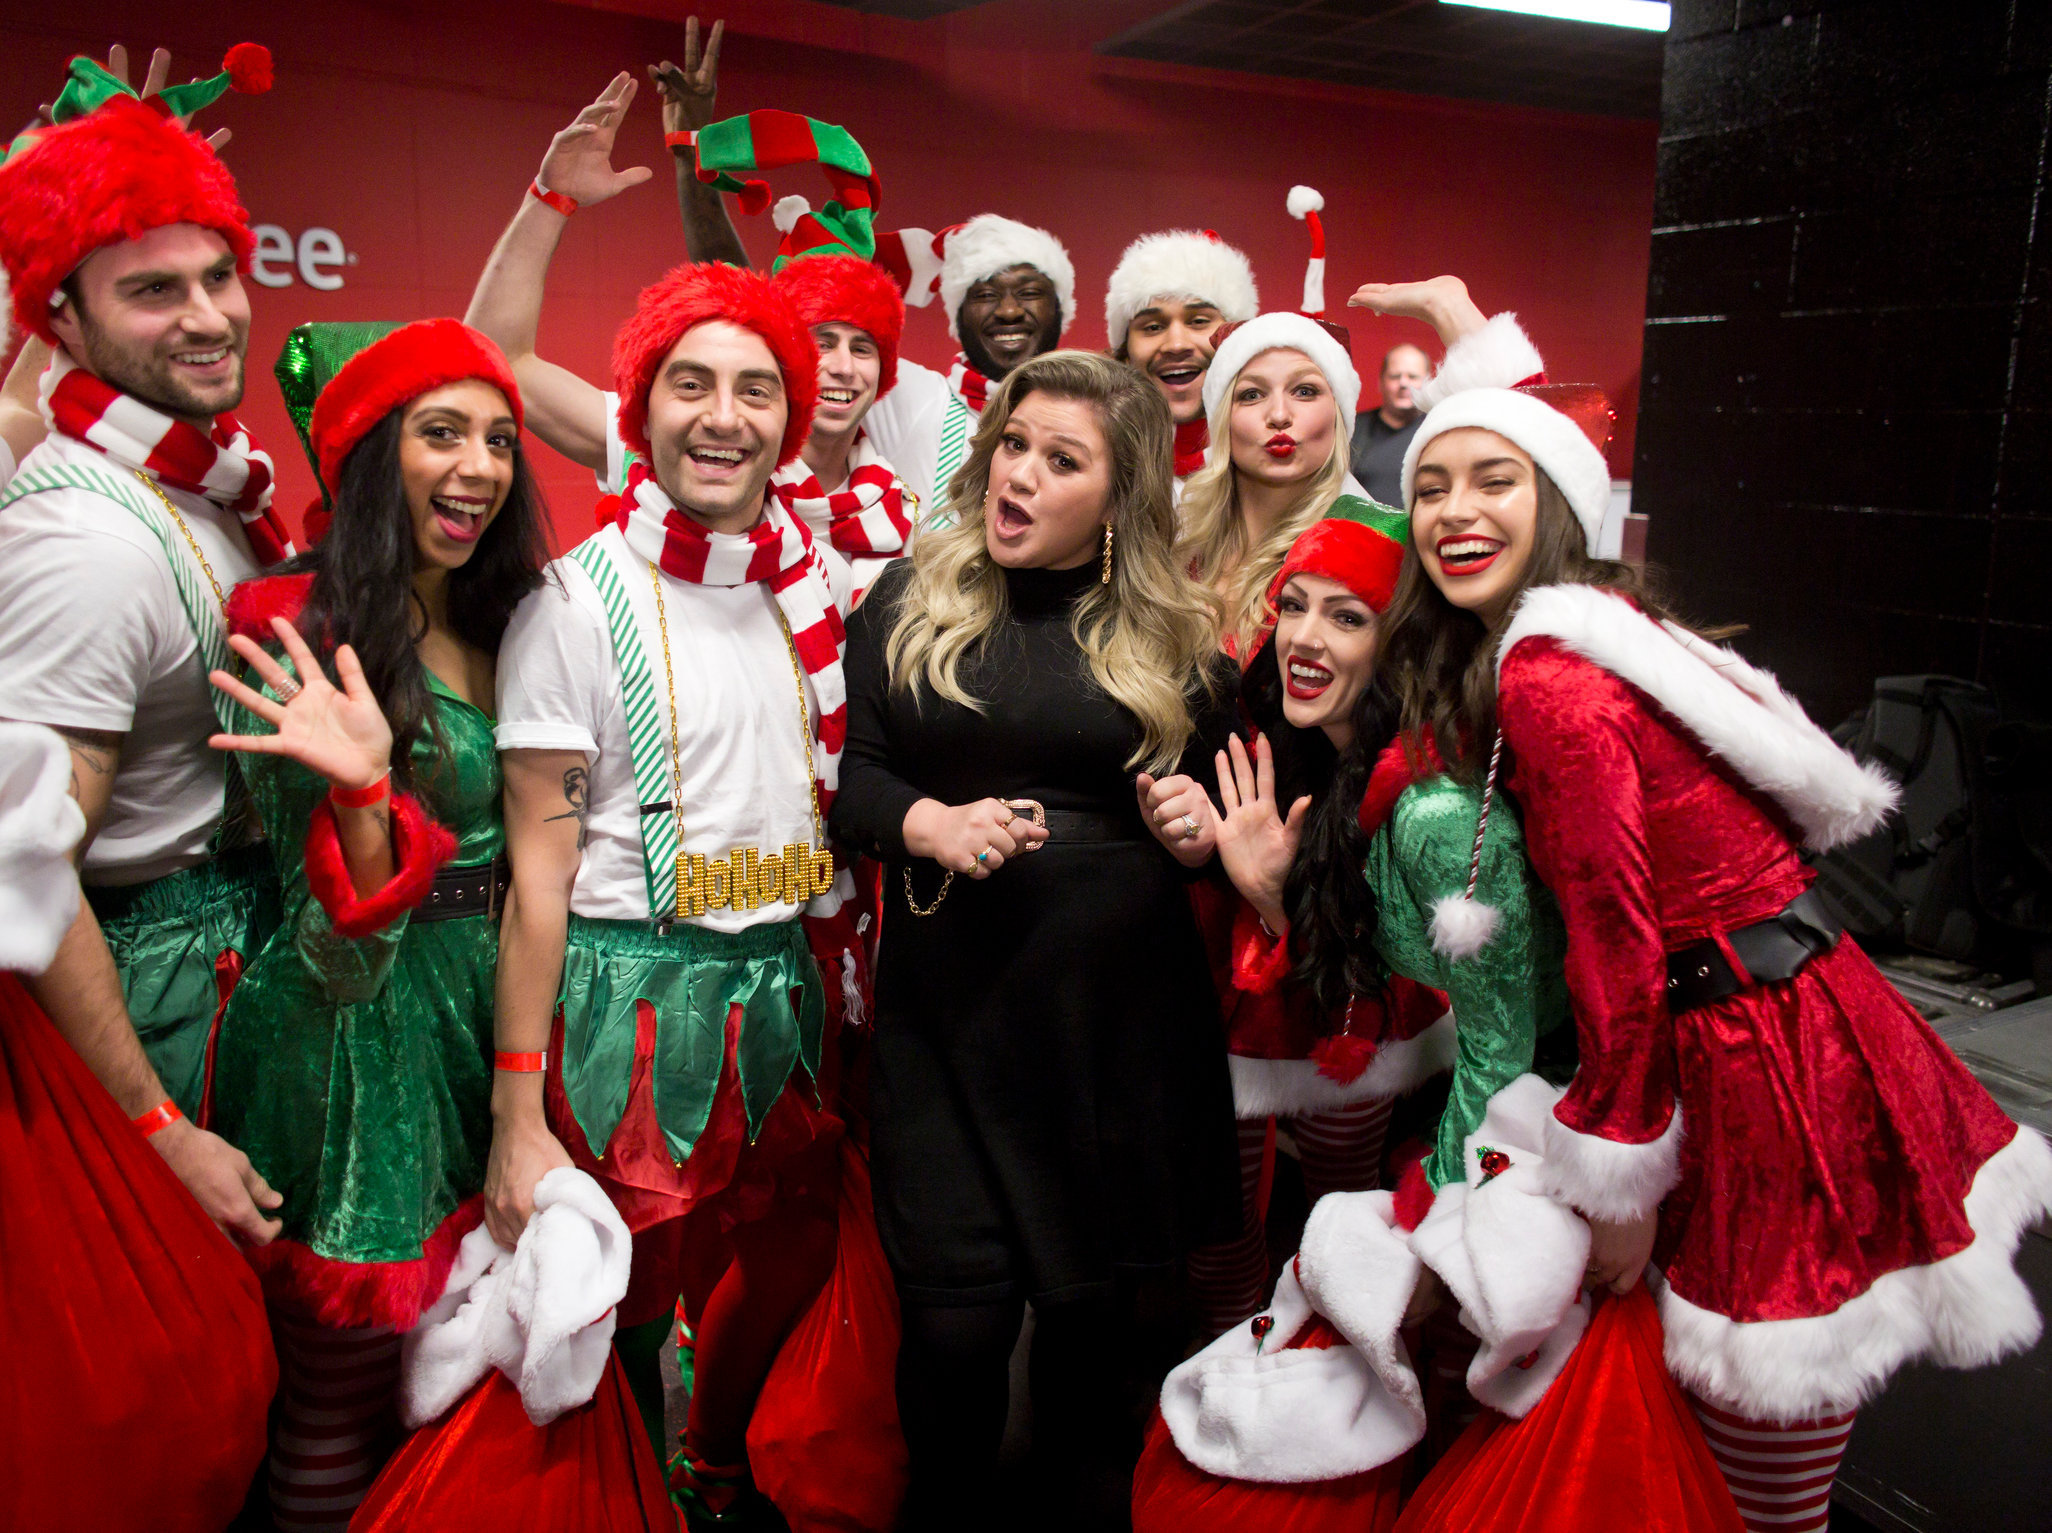 iHeart_Jingle_Behind_The_Scenes_005.JPG